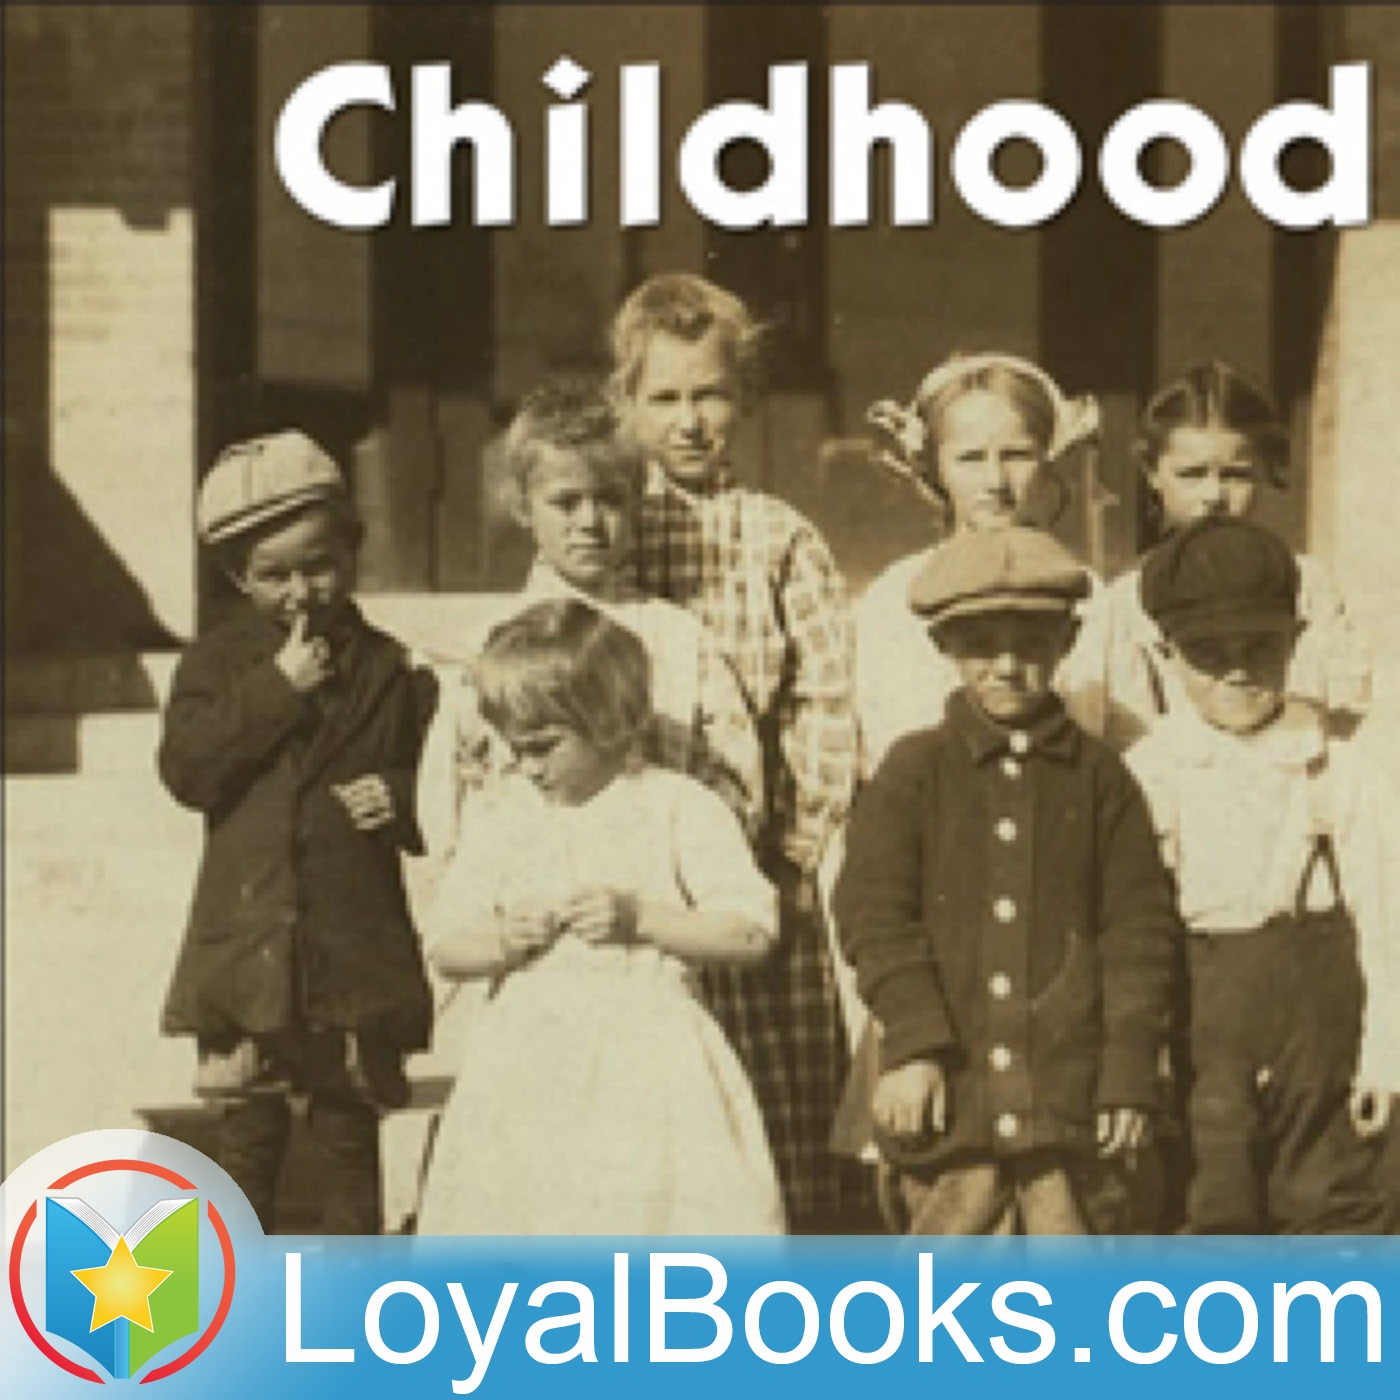 <![CDATA[Childhood (English trans.) by Leo Tolstoy]]>